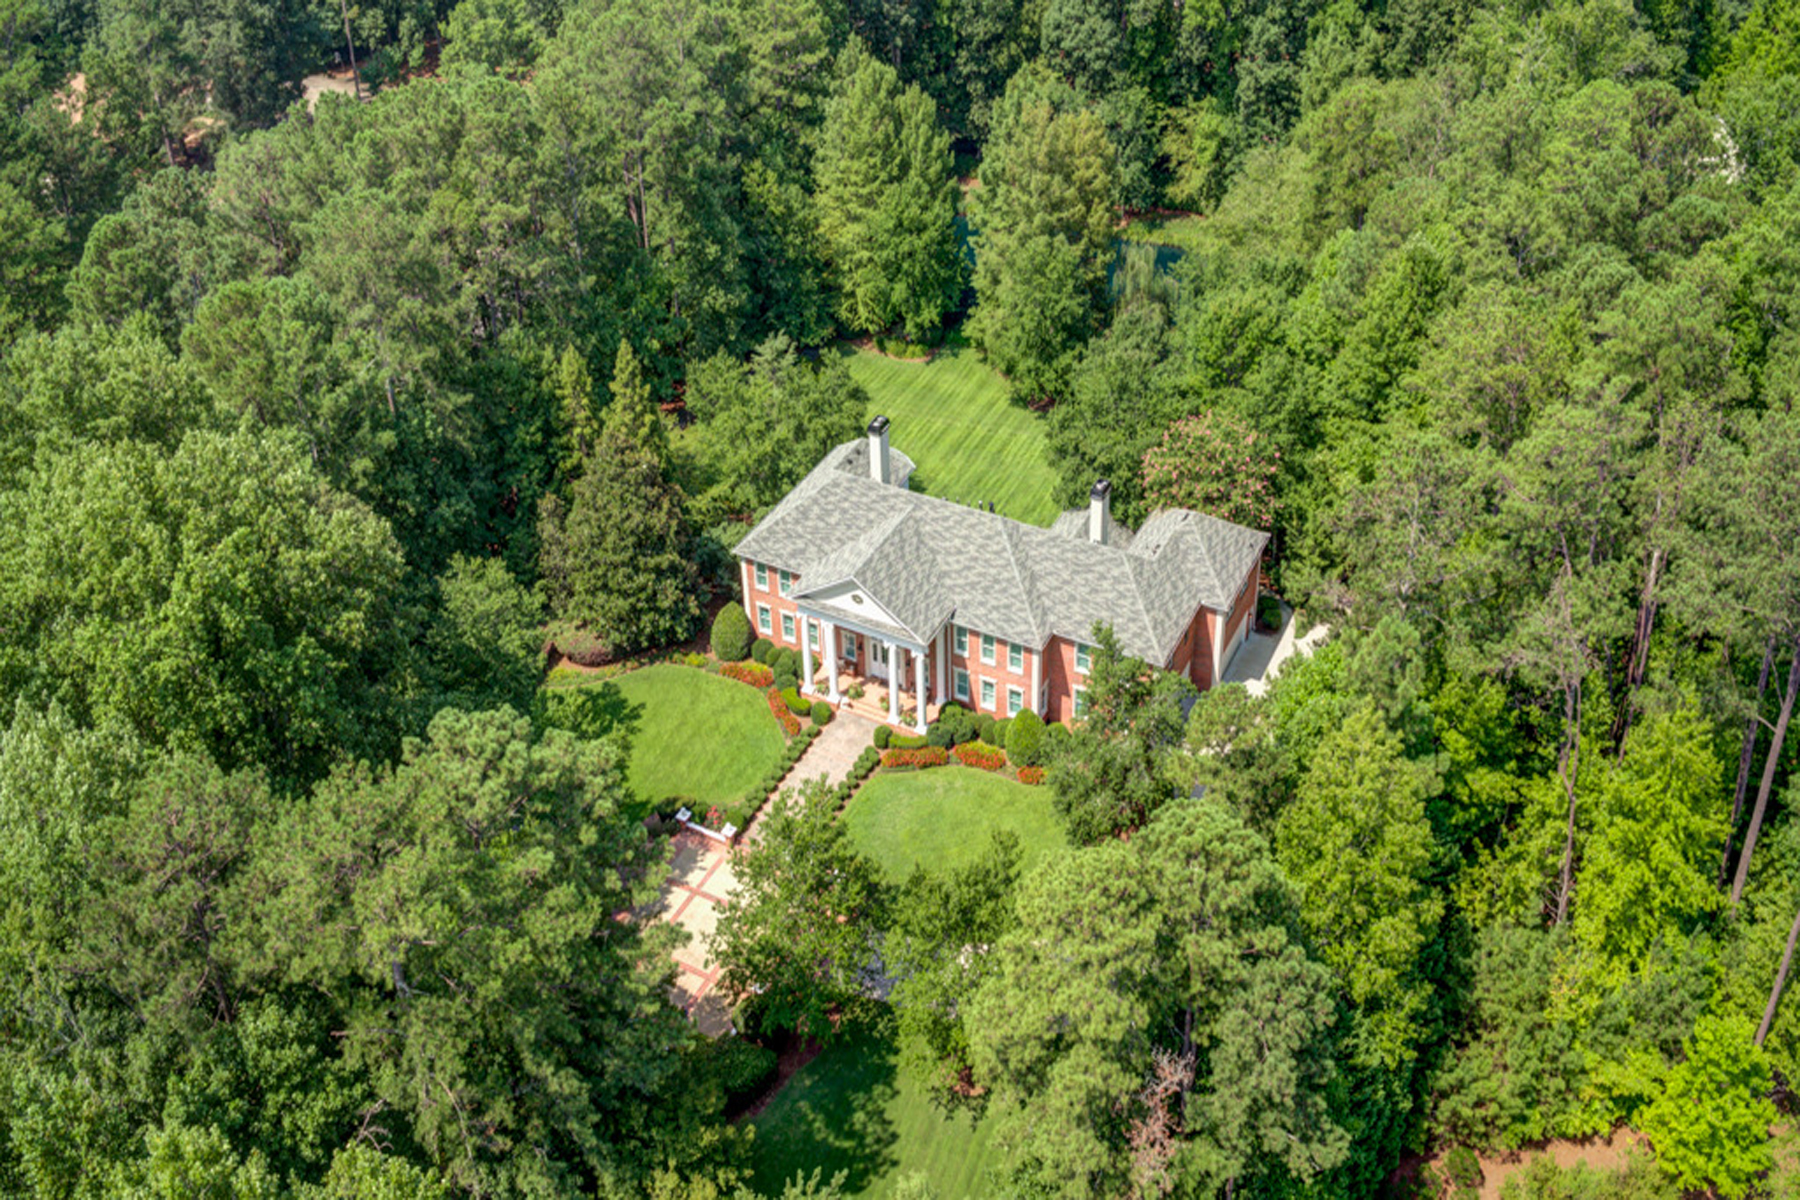 Casa Unifamiliar por un Venta en Meticulous Custom Built Home On Five Acres 4500 Candacraig Alpharetta, Georgia, 30022 Estados Unidos